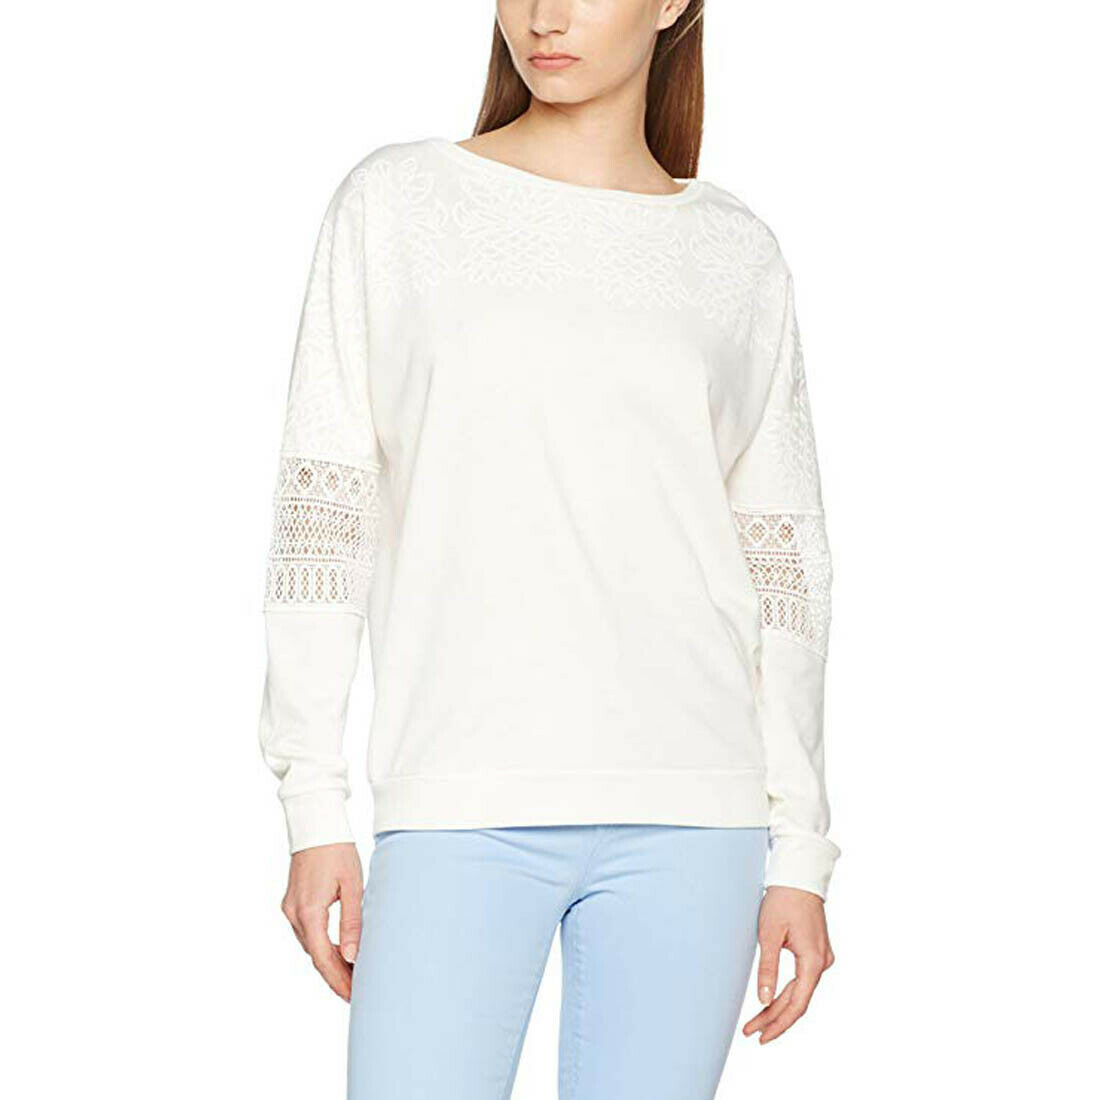 Primary image for Desigual Women's Ola Knitted Long Sleeve Sweat-Shirt, White